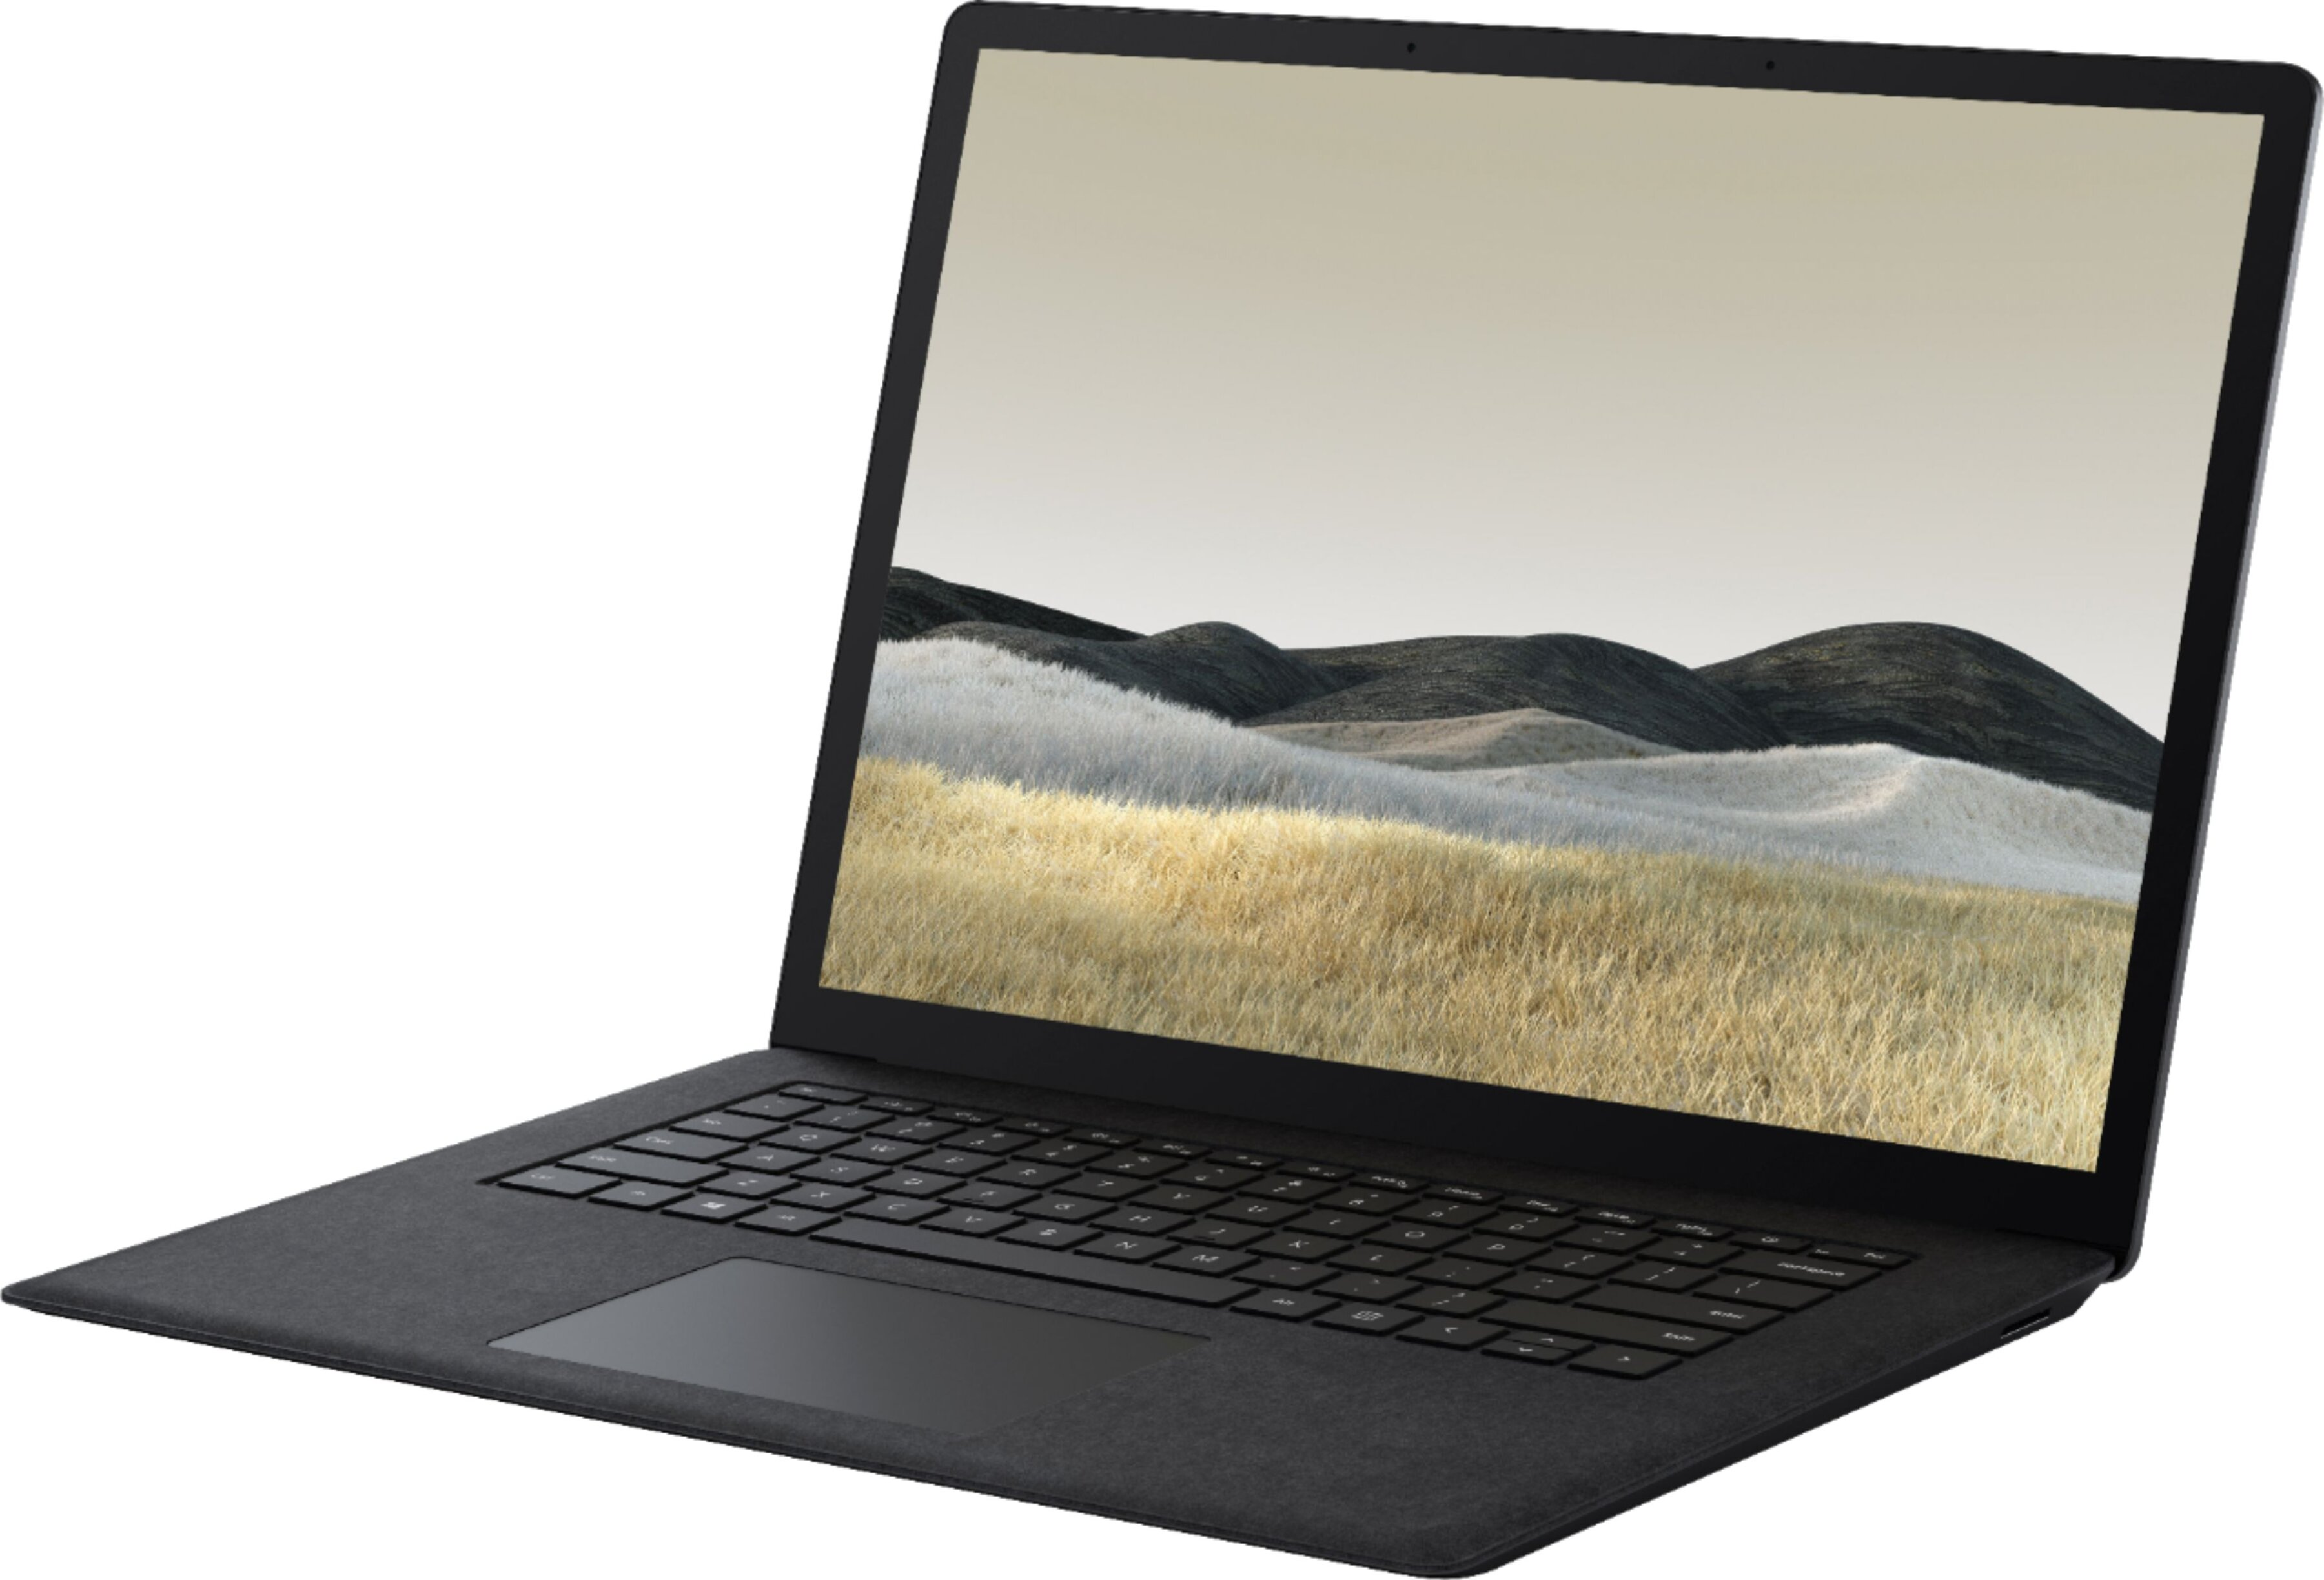 "Microsoft - Surface Laptop 3 - 15"" Touch Screen - AMD Ryzen™ 5 Surface Edition - 8GB Memory - 128GB SSD - Black Alcantara"